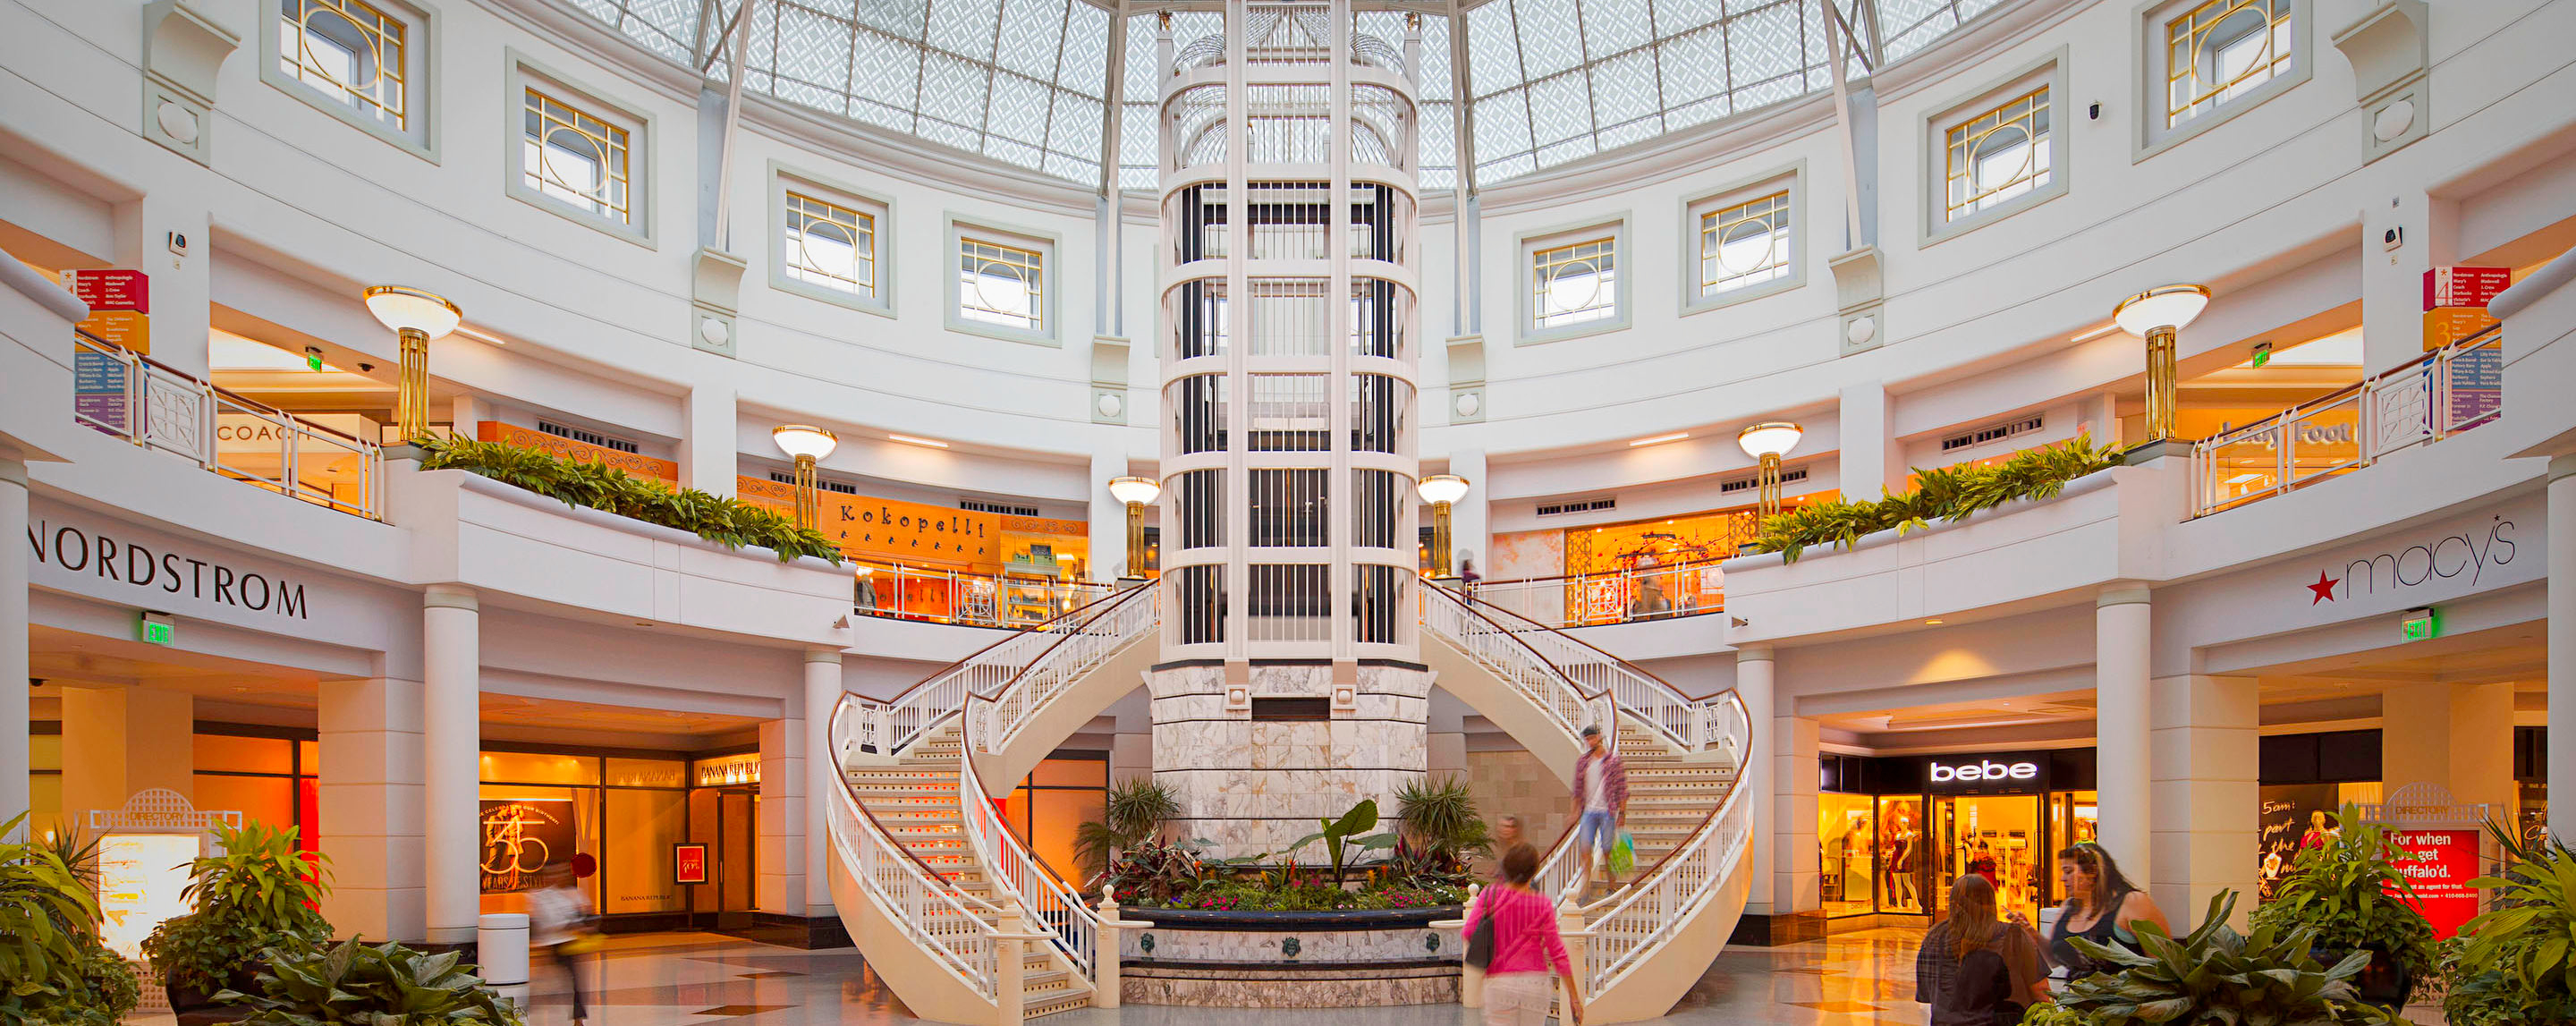 Towson Town Center is a large indoor shopping mall located in Towson, Maryland. It was the largest indoor shopping mall in Maryland prior to the completion of Arundel Mills in late in Hanover and the expansion of the Annapolis Mall.